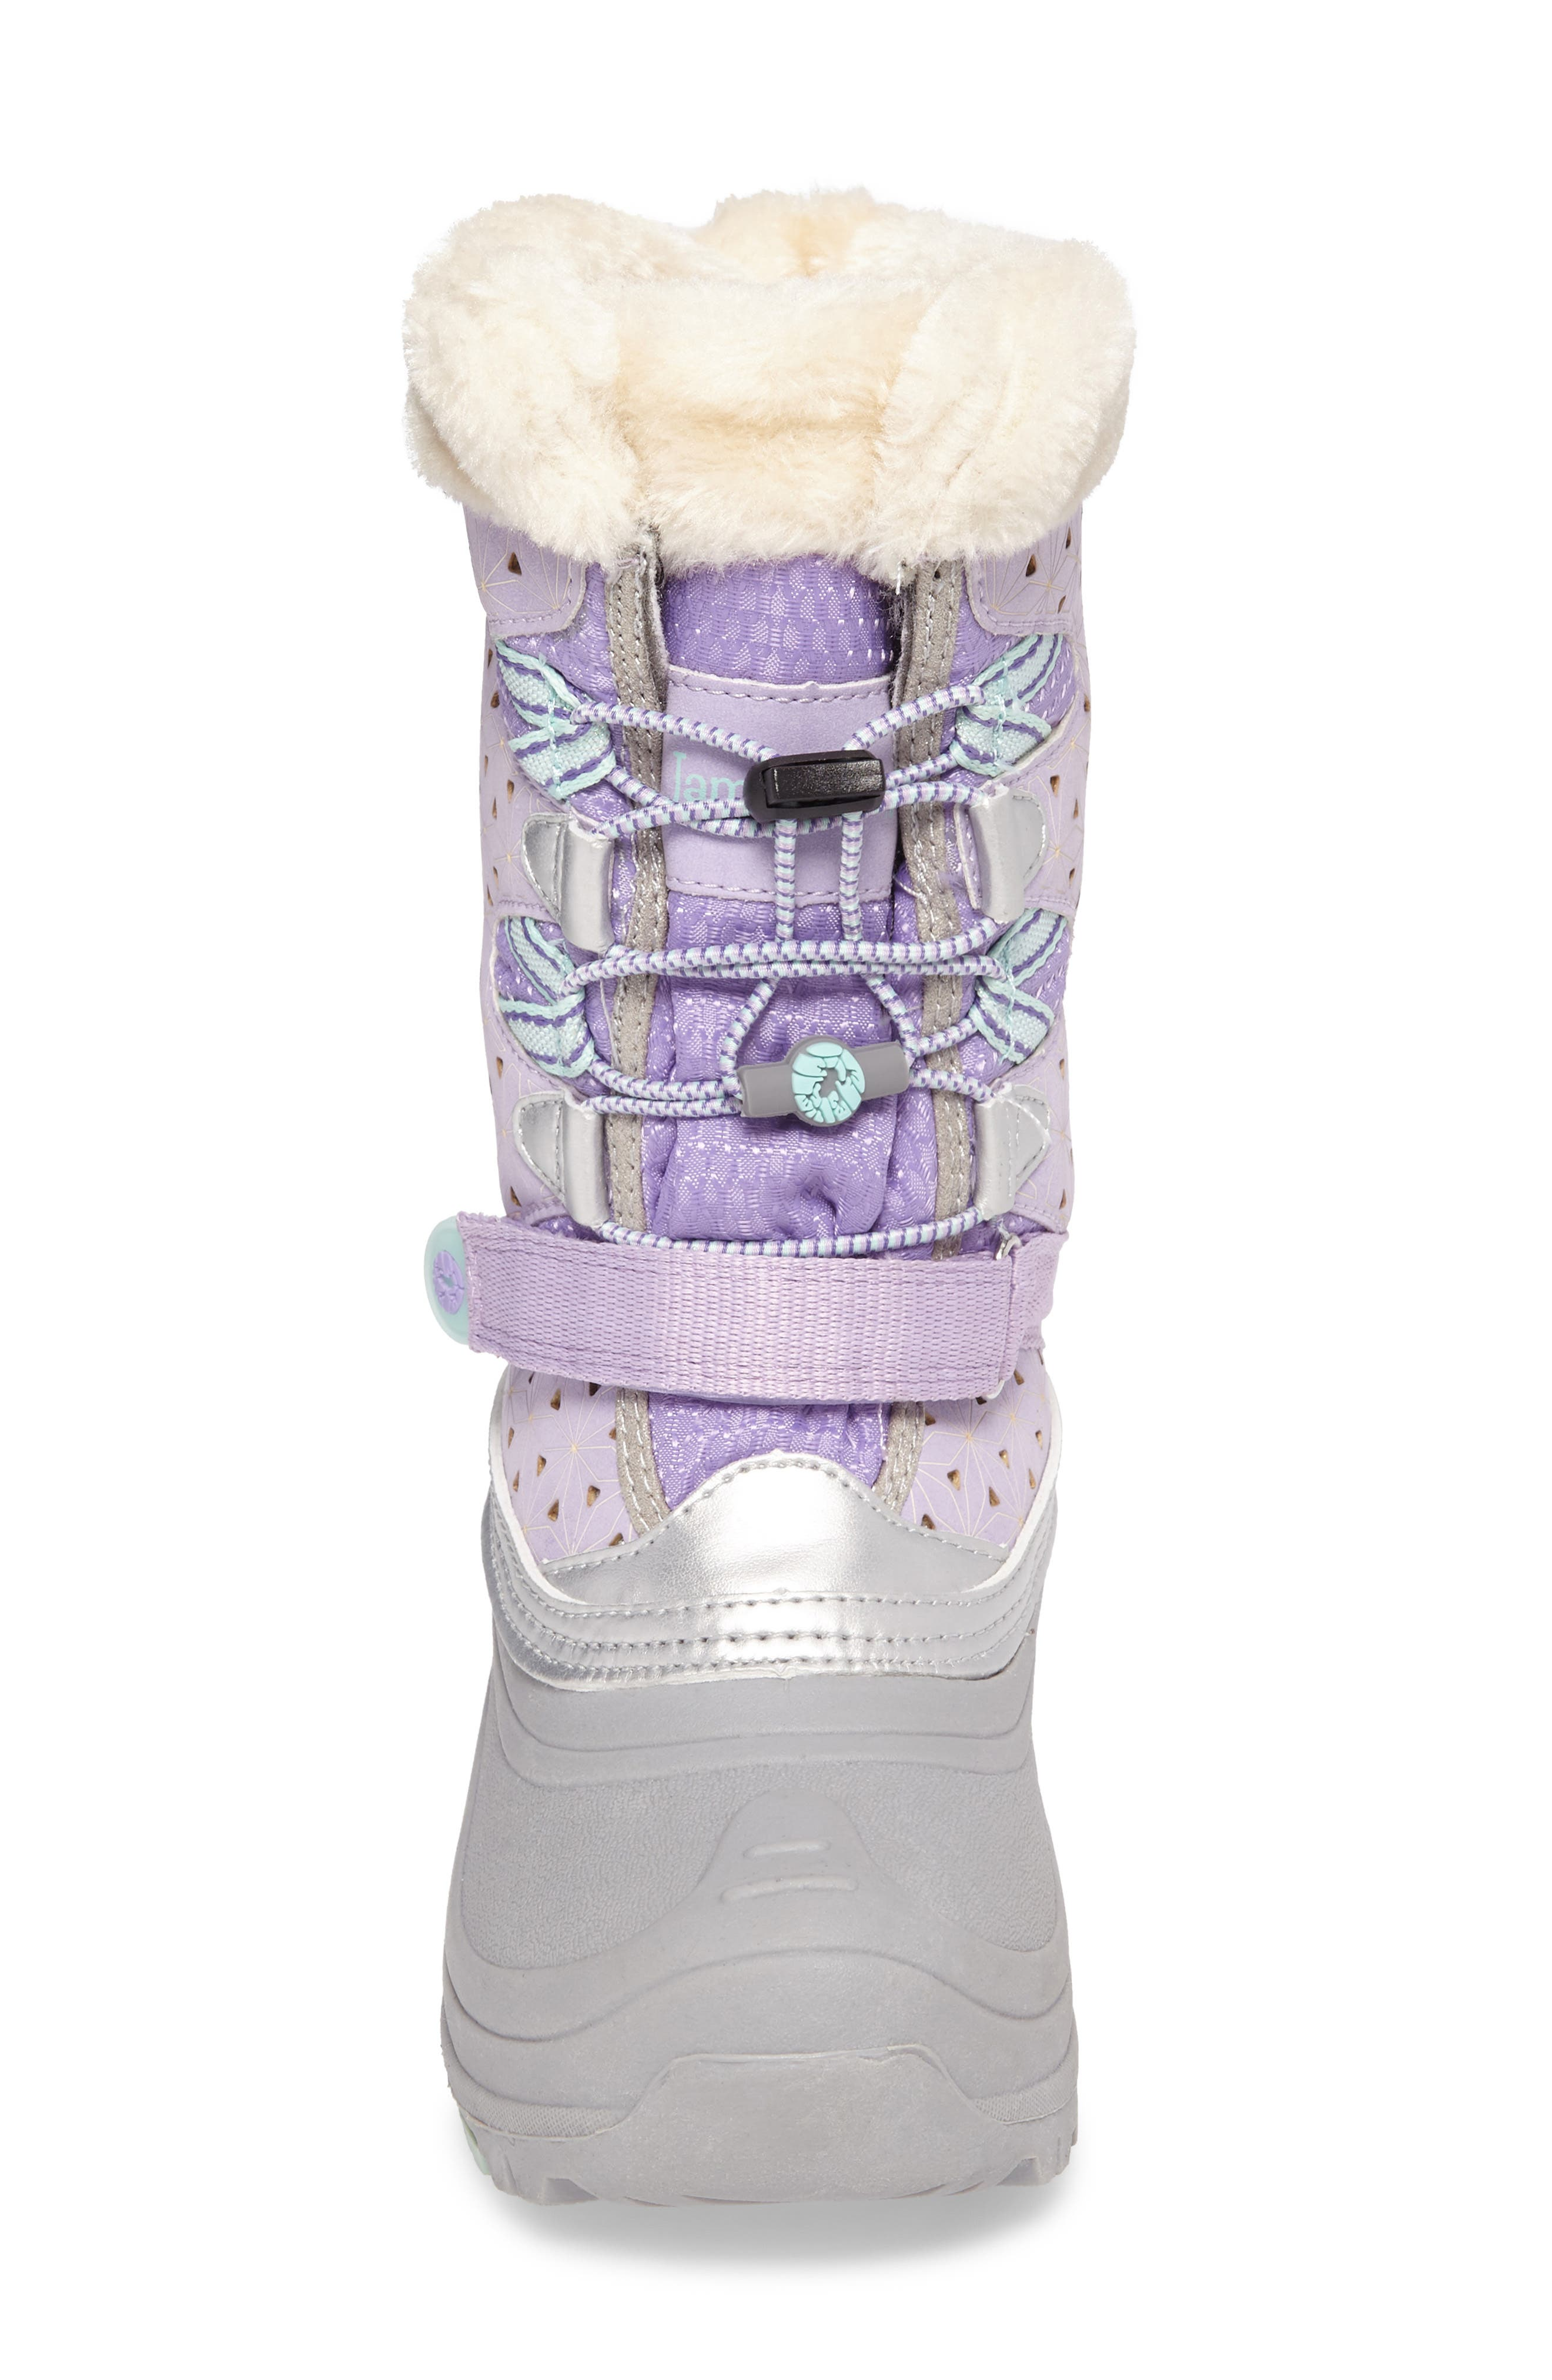 'Venom' Waterproof Insulated Snow Boot,                             Alternate thumbnail 8, color,